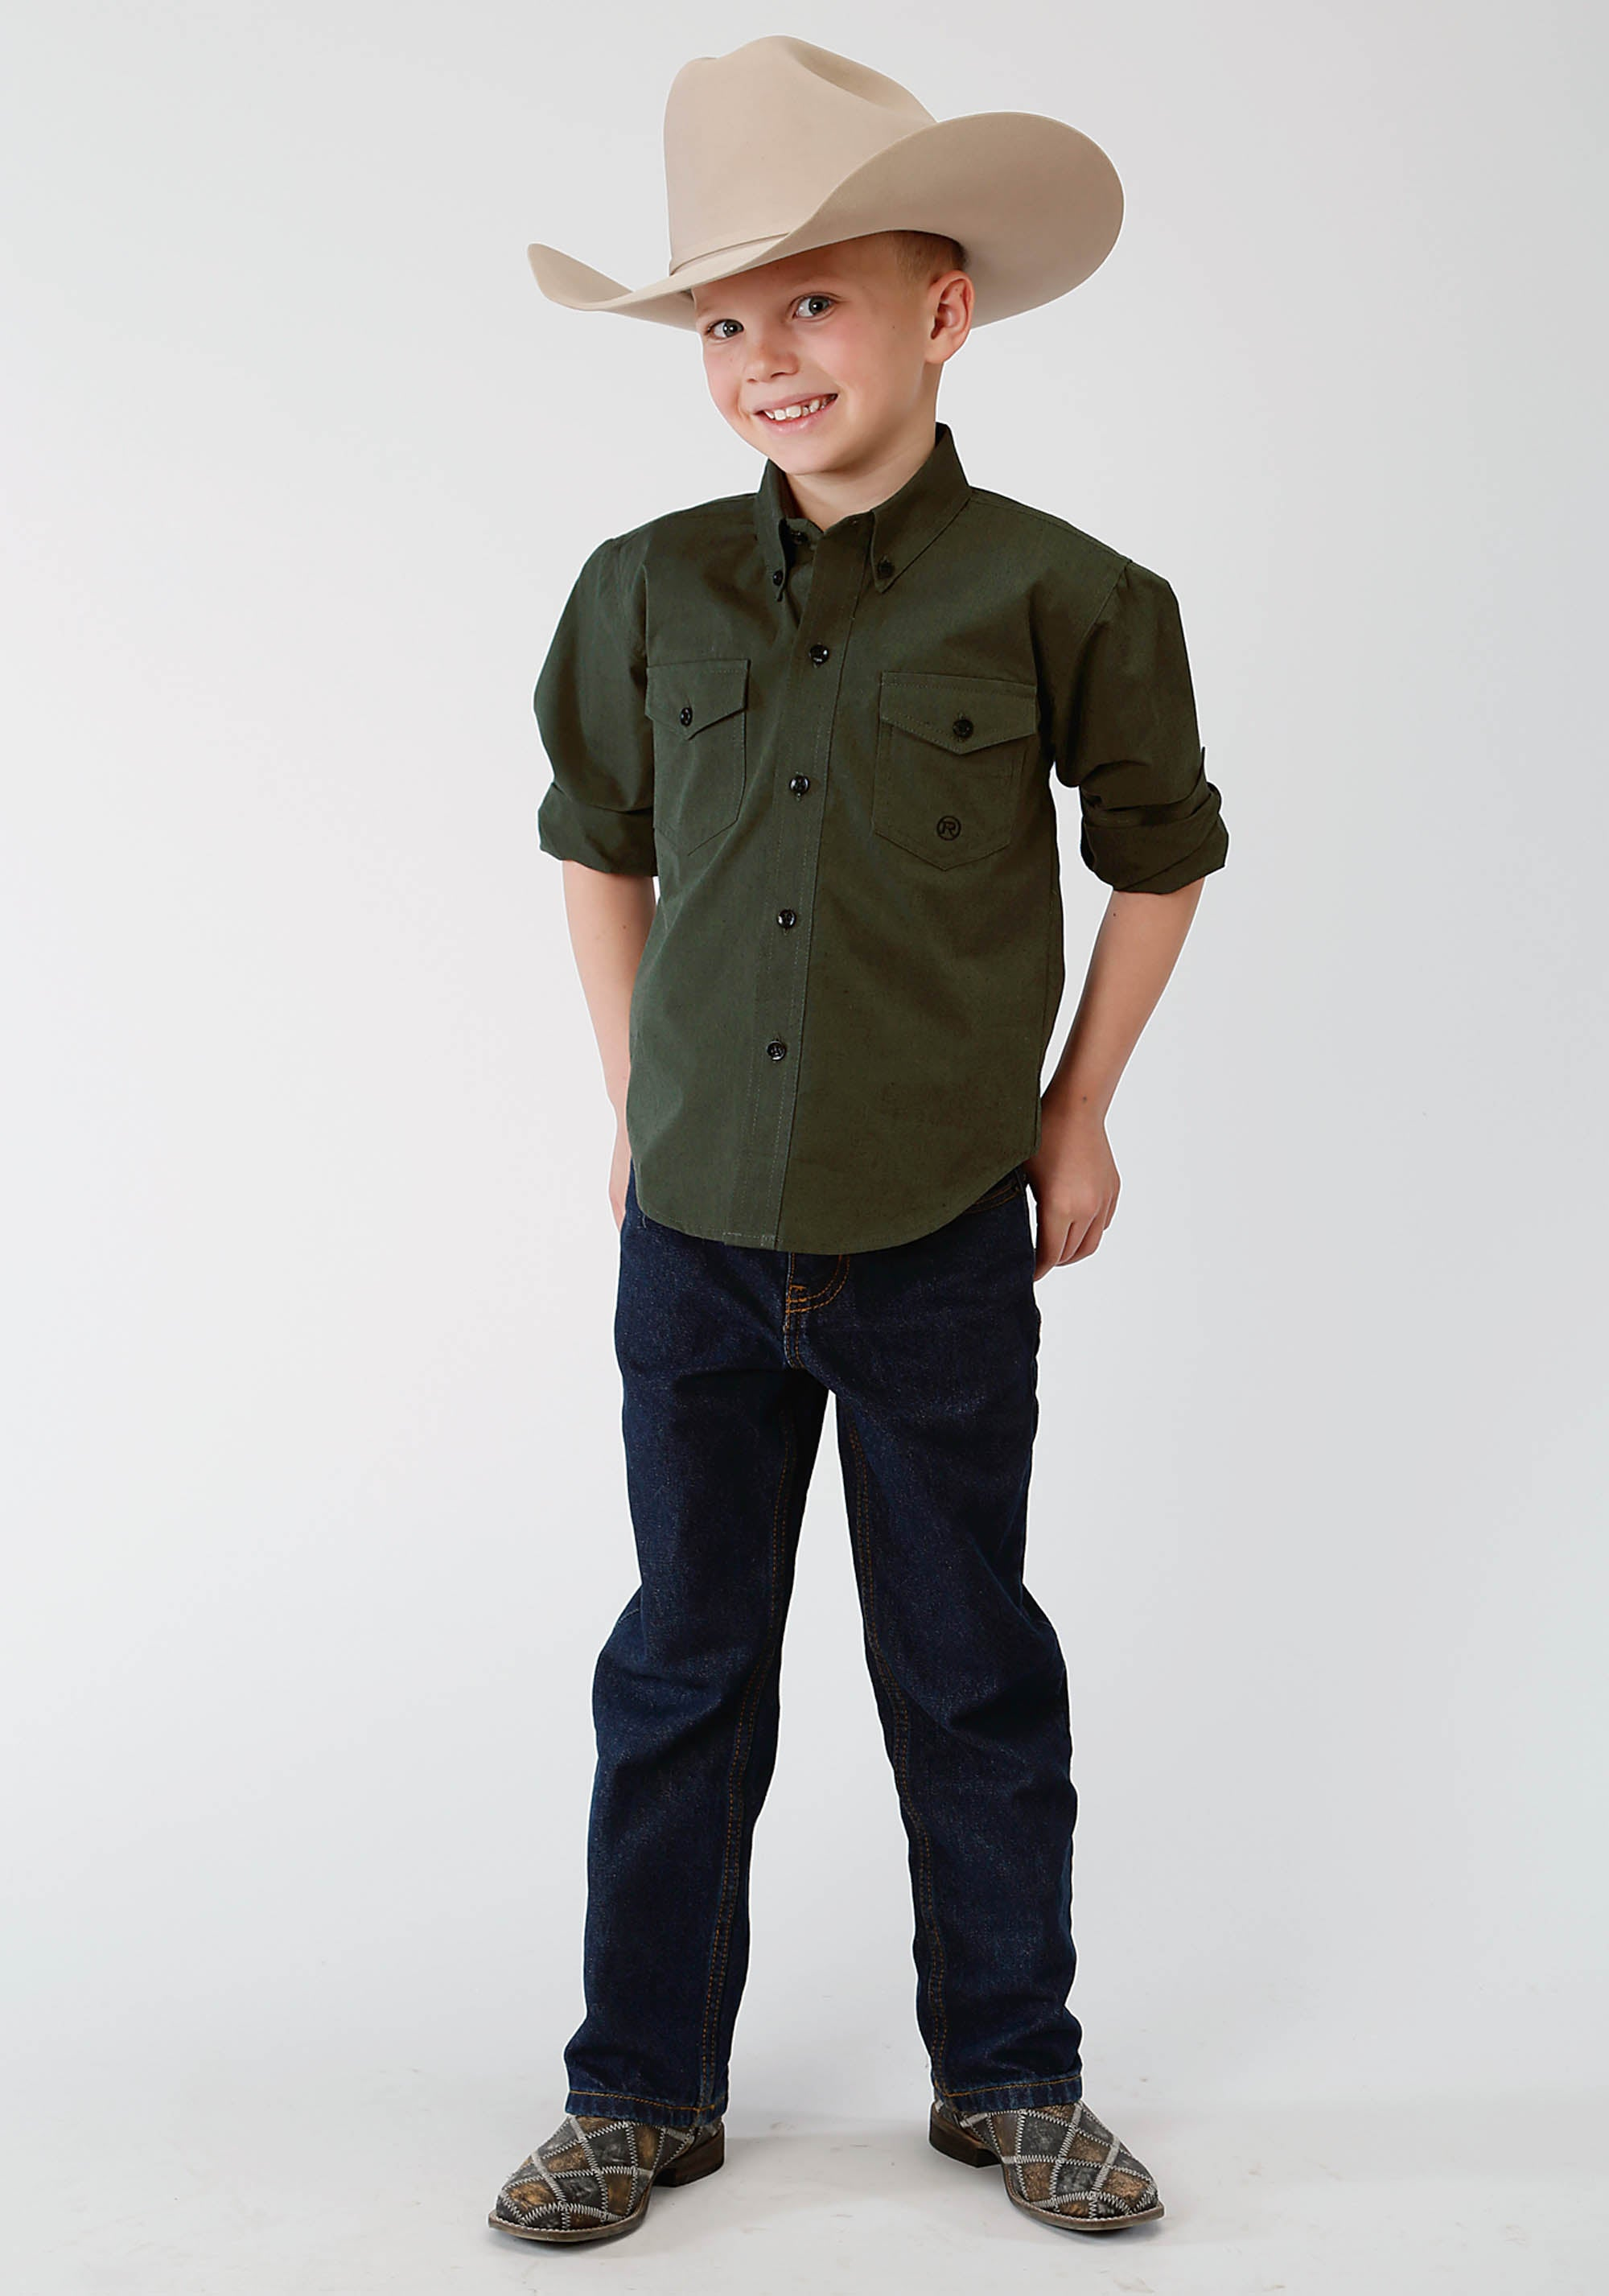 ROPER BOYS GREEN 1413 BLACK FILL OLIVE BOYS AMARILLO COLLECTION- MEADOW LONG SLEEVE